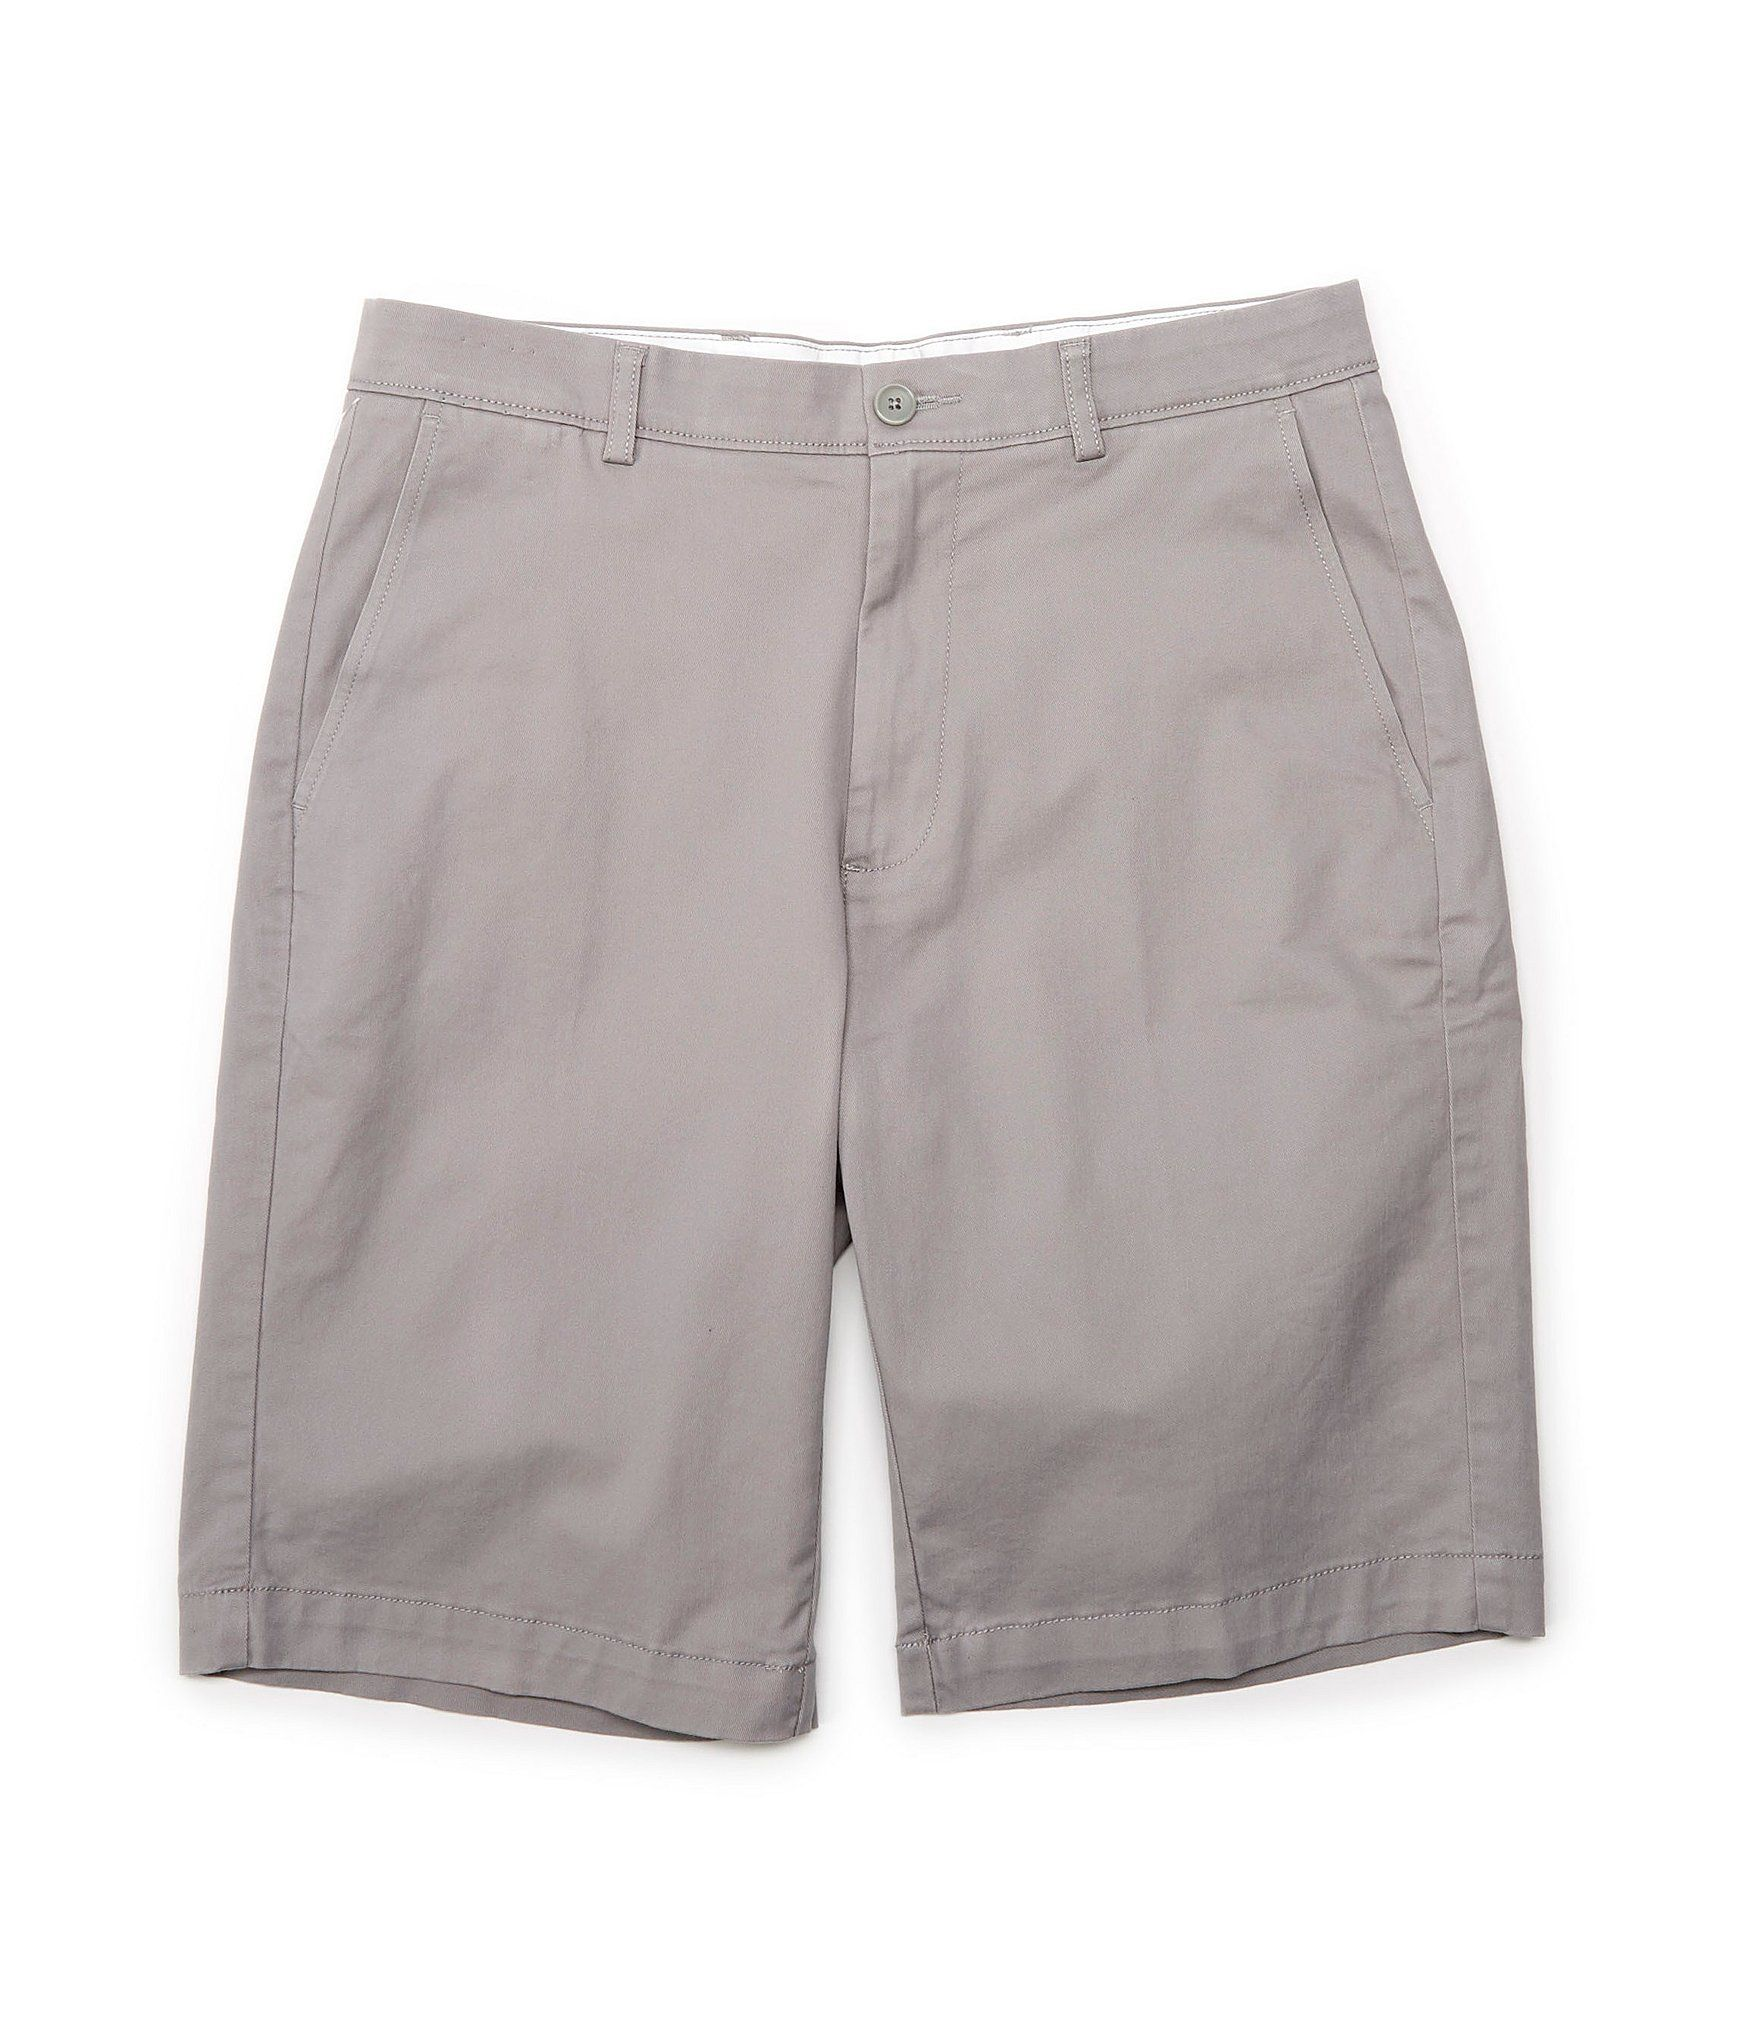 Roundtree Yorke Flat Front 11 Double Inseam Washed Cotton Shorts Dillards Cotton Shorts Cargo Shorts Outfit Mens Fashion Casual Summer [ 2040 x 1760 Pixel ]